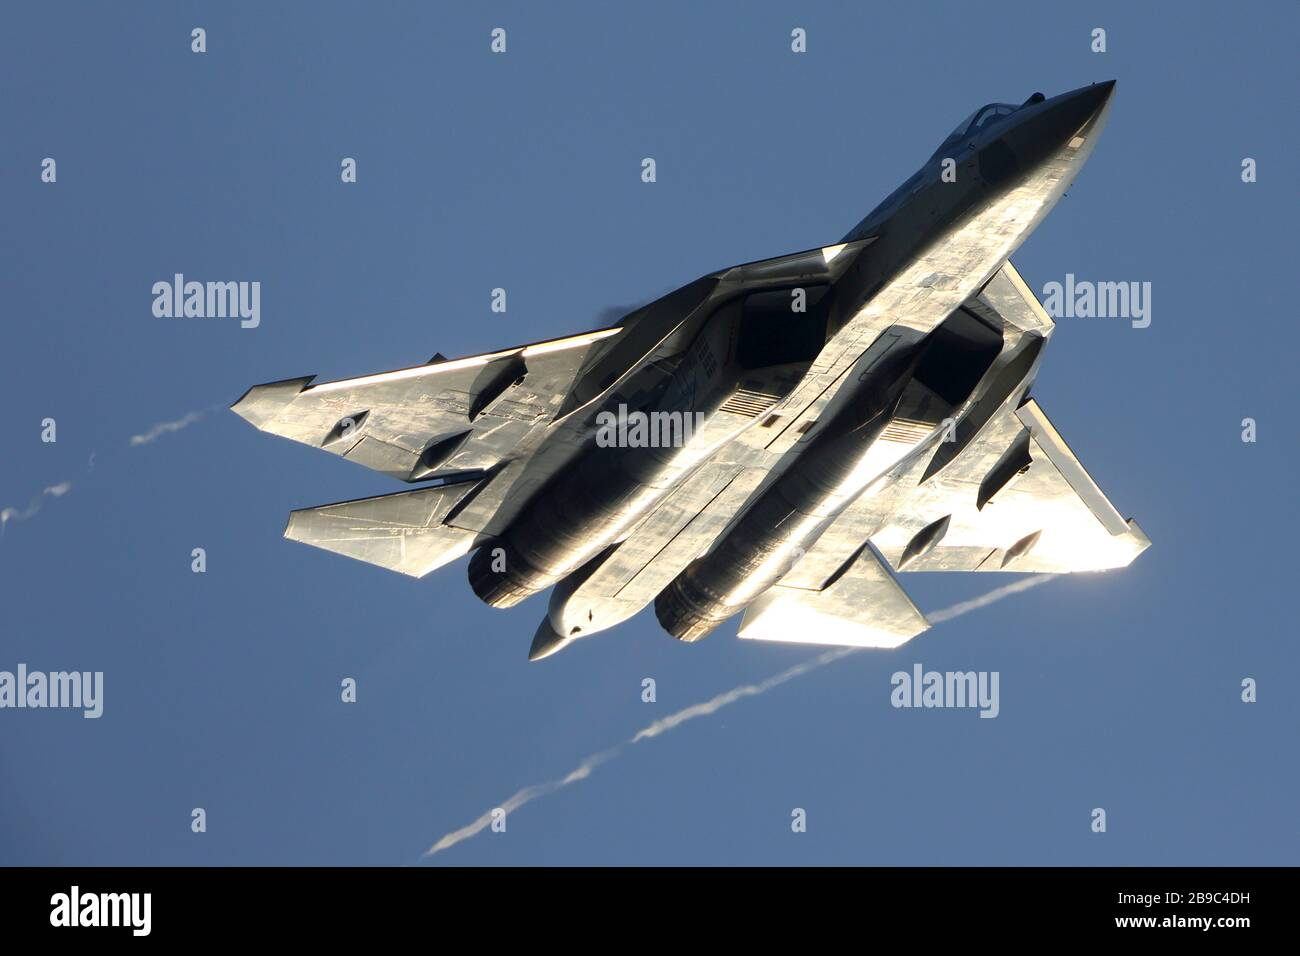 Su-57 jet fighter of the Russian Air Force against a blue sky. Stock Photo